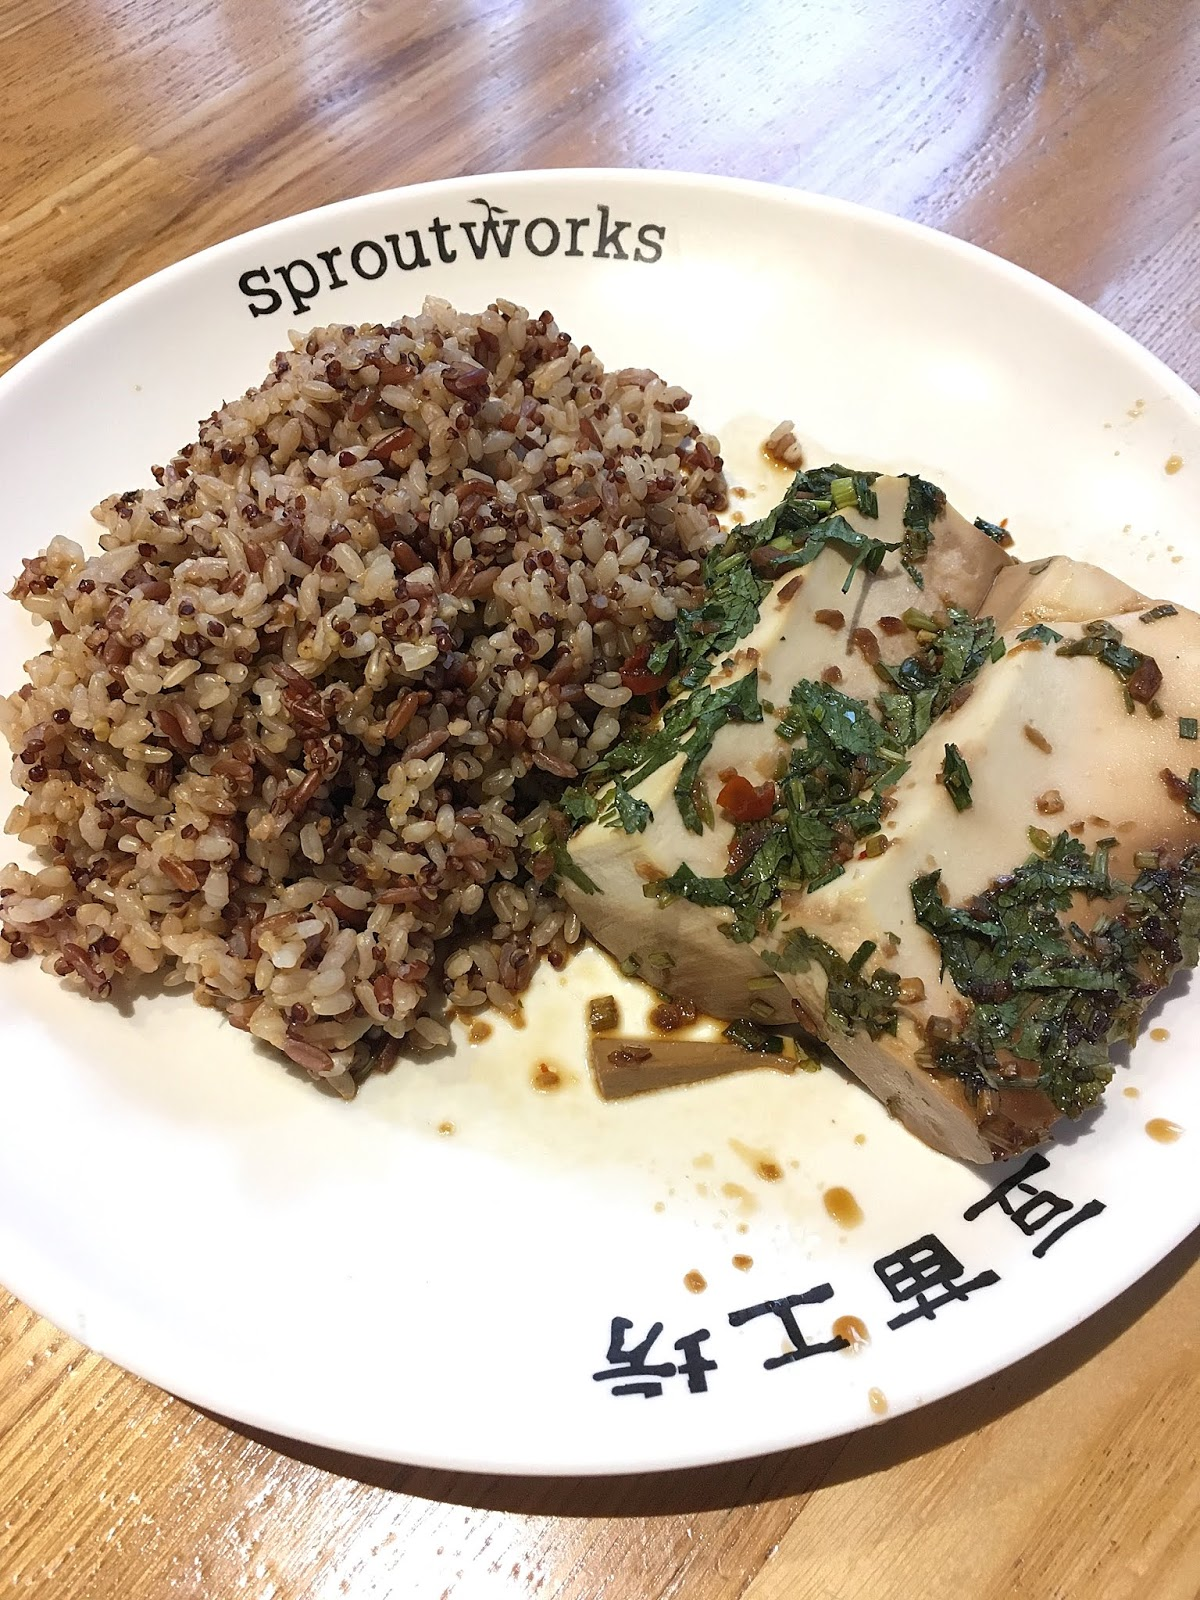 Brown Rice and Red Quinoa with Spicy Soy Sauce Soft Tofu Sproutworks Shanghai